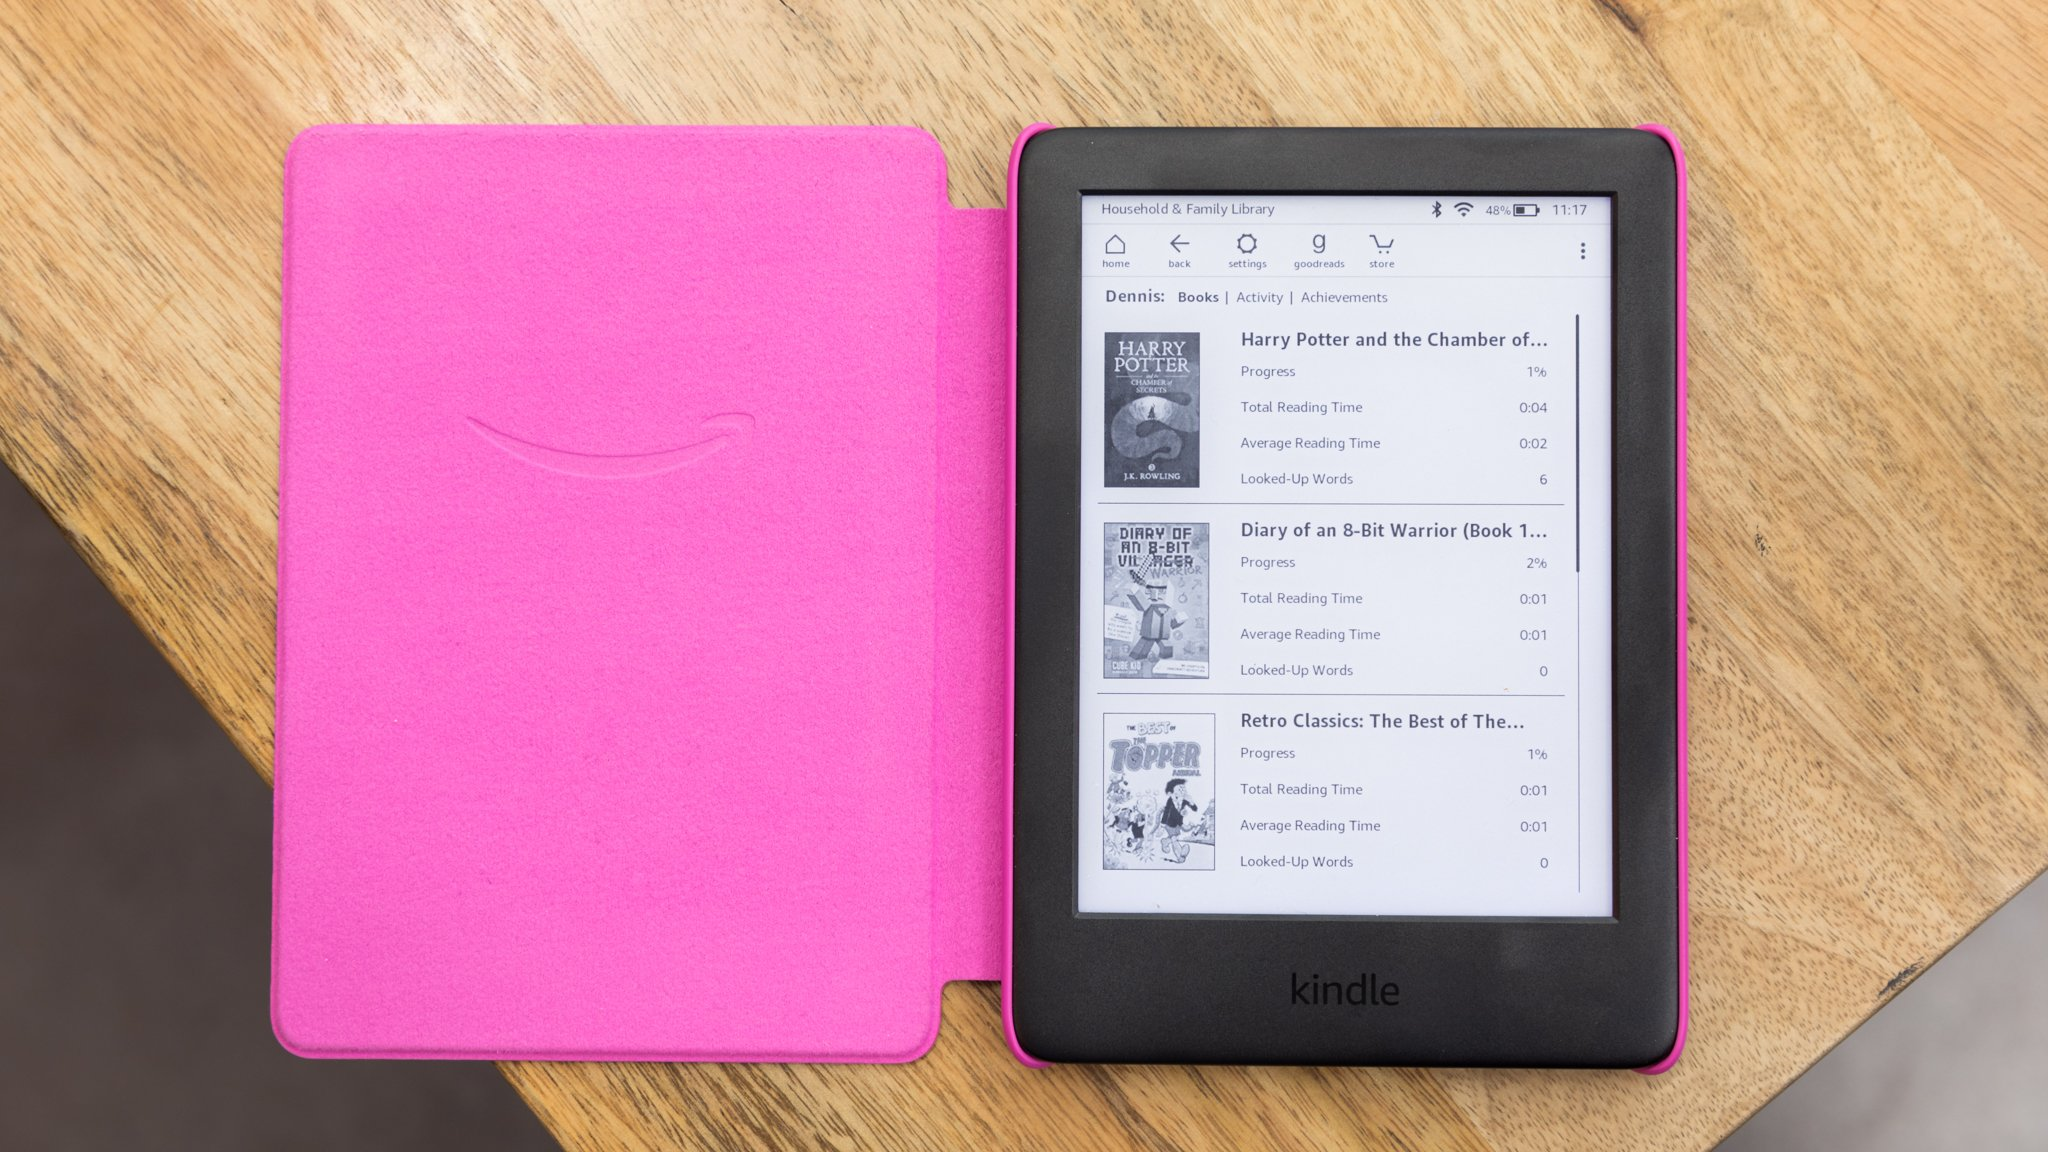 Amazon Kindle Kids Edition review: A regular Kindle with some